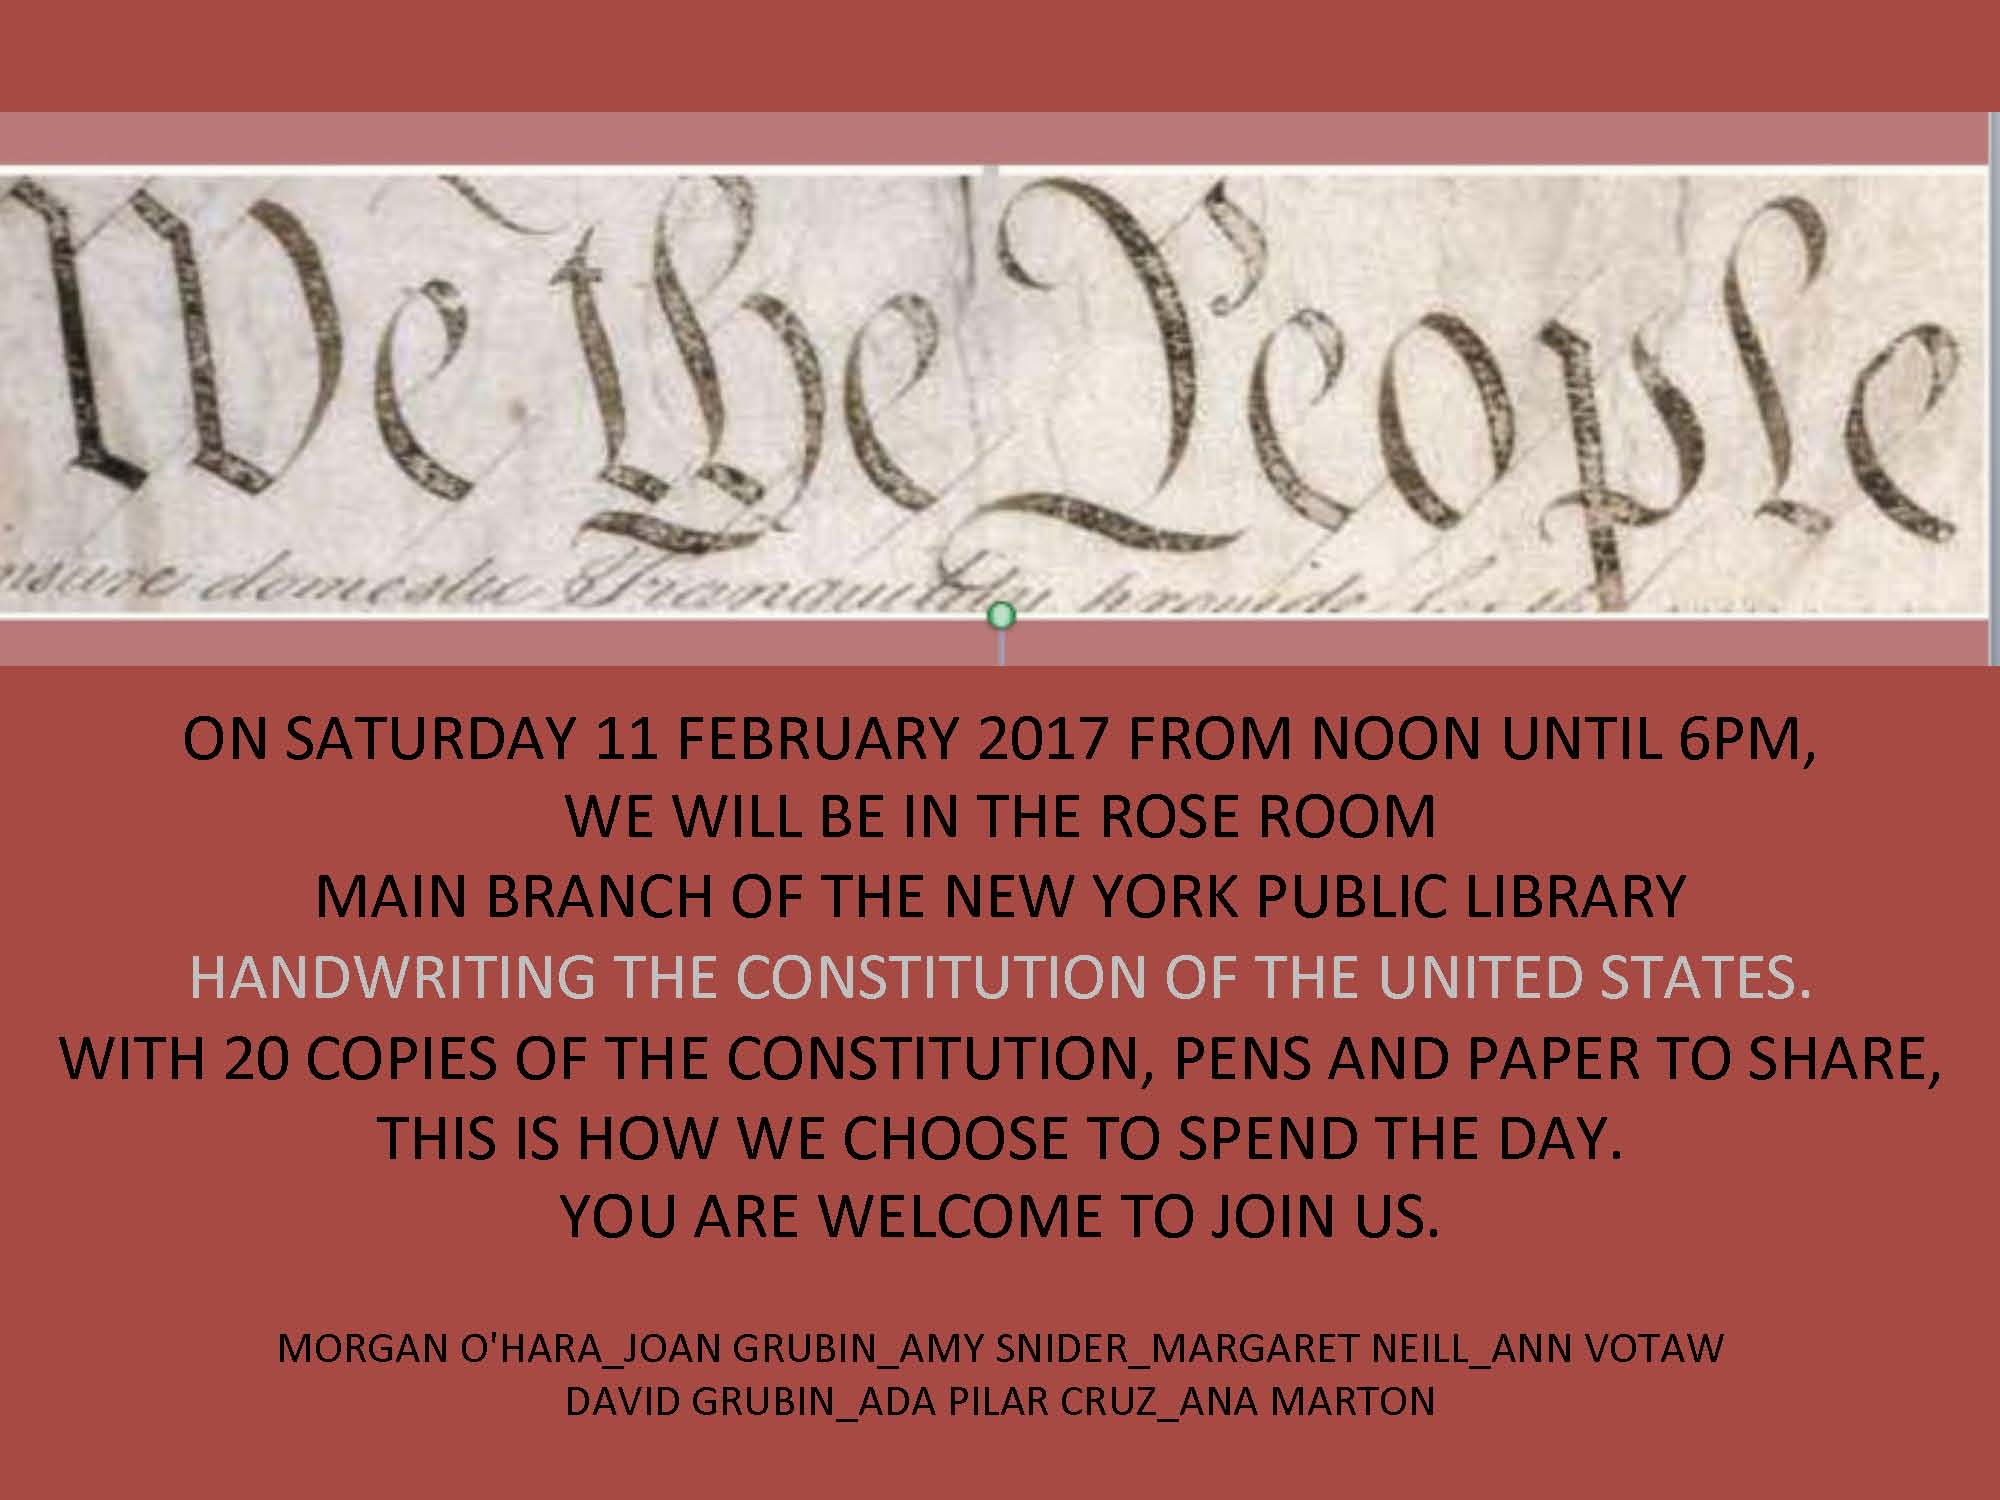 #2 ___ 11 FEBRUARY 2017 NEW YORK CITY